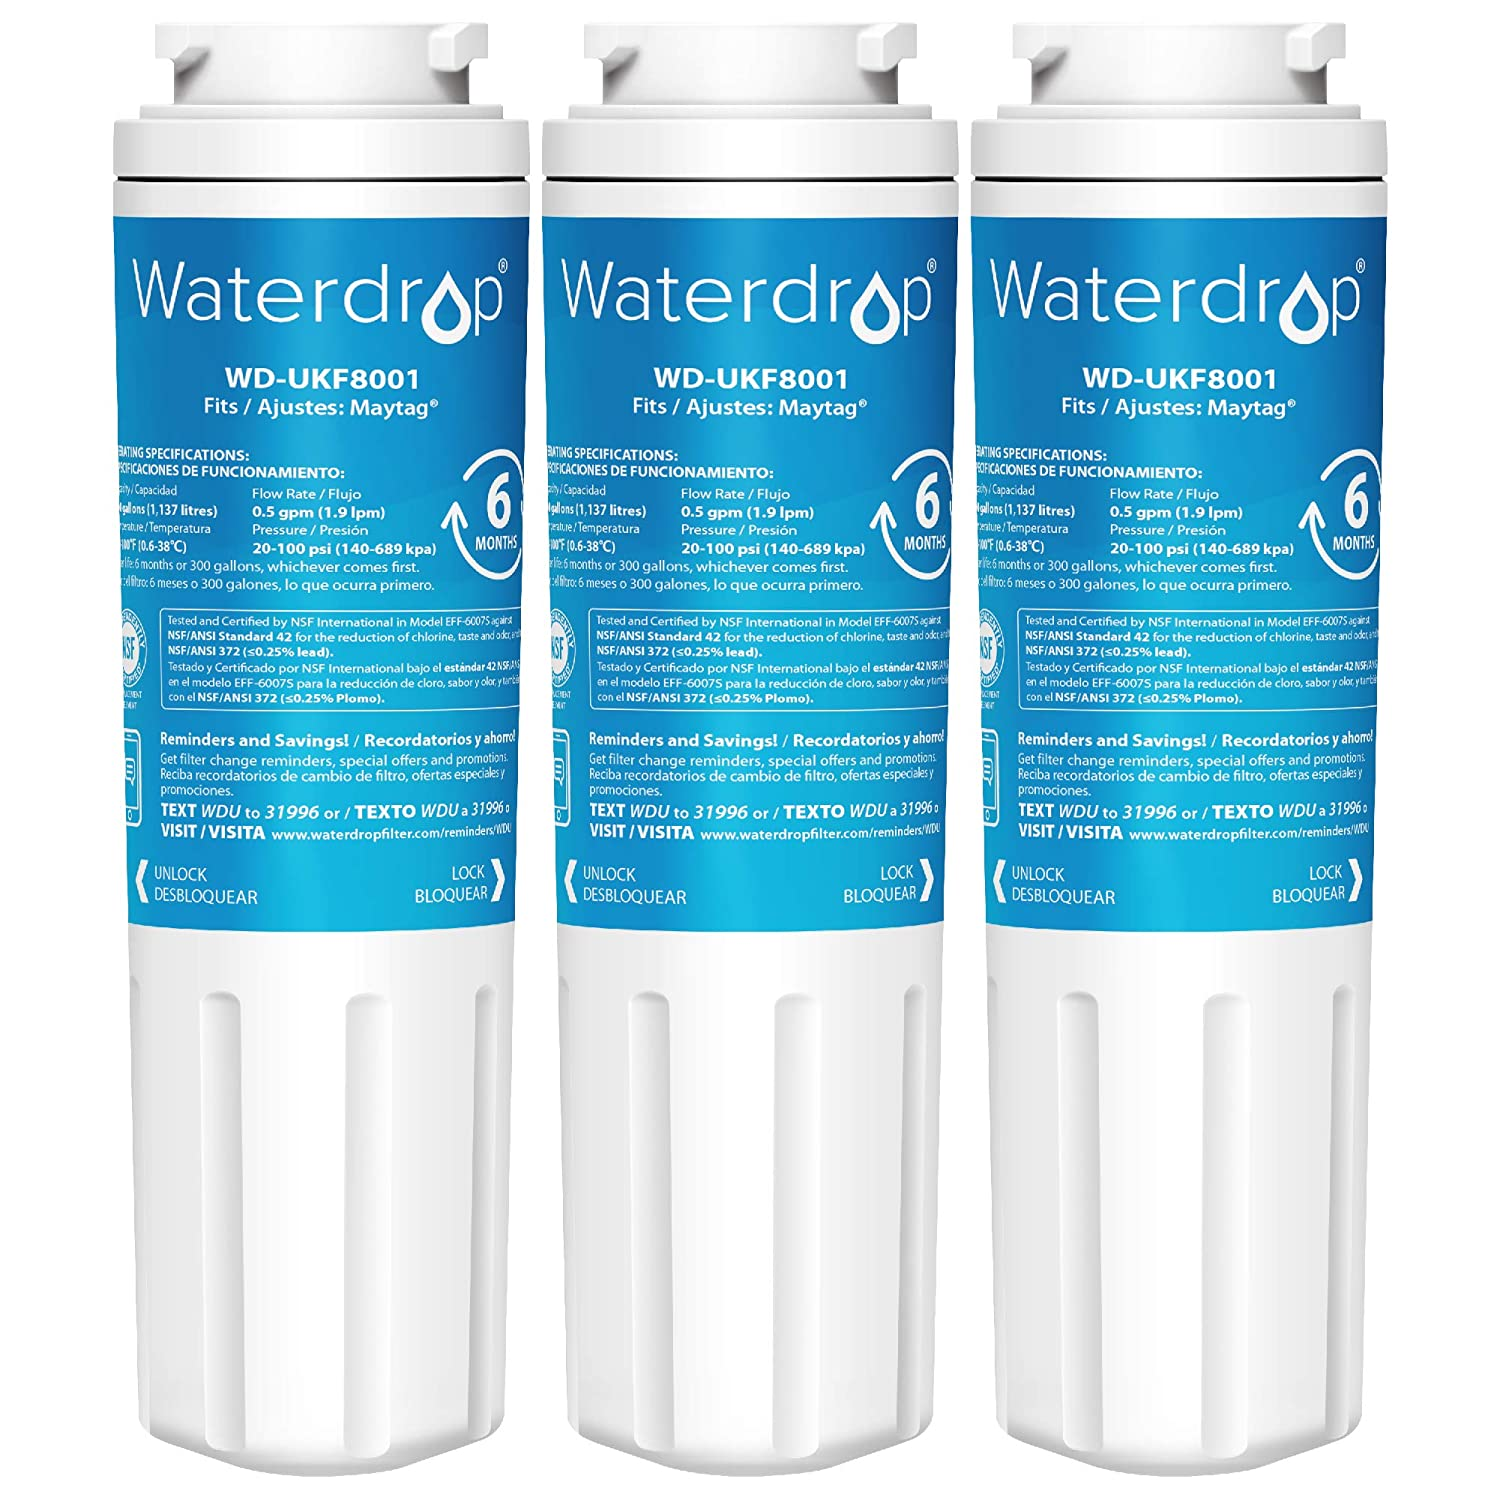 Waterdrop UKF8001 Refrigerator Water Filter, Compatible with Maytag  UKF8001, UKF8001AXX-750, UKF8001AXX-200, Whirlpool 4396395, 469006,  EveryDrop